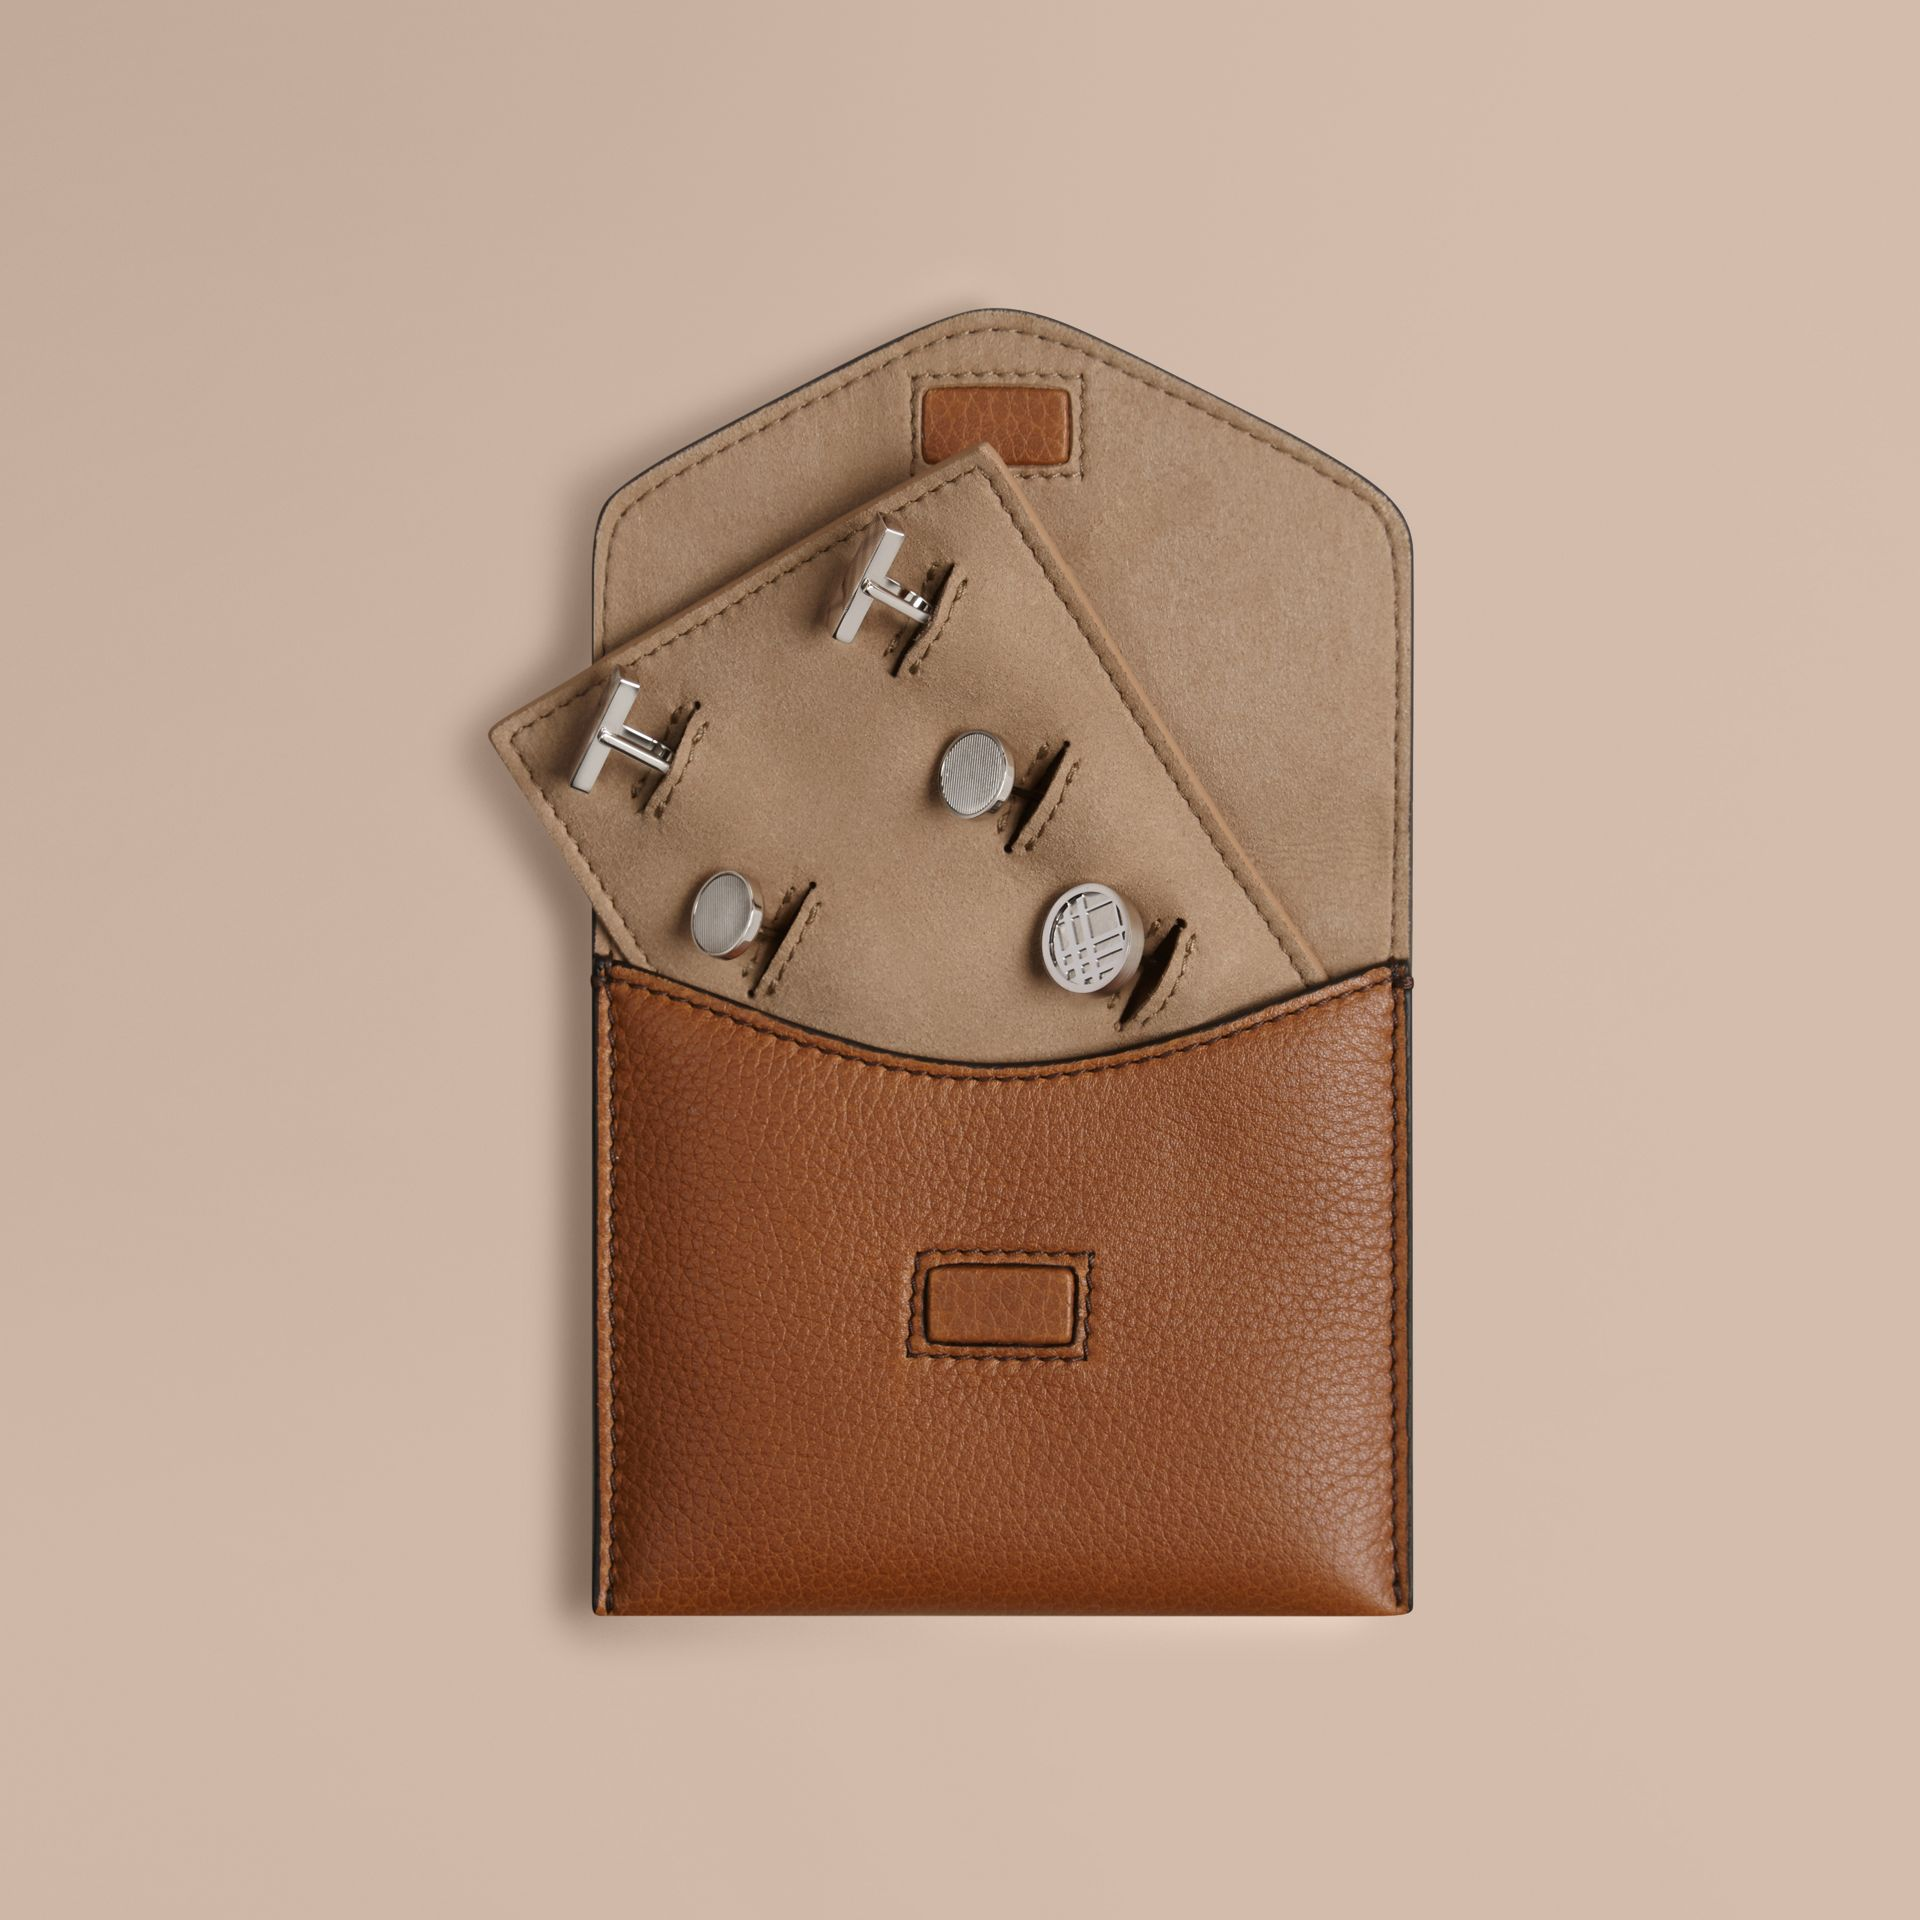 Grainy Leather Cufflink Case in Tan - Men | Burberry Canada - gallery image 1